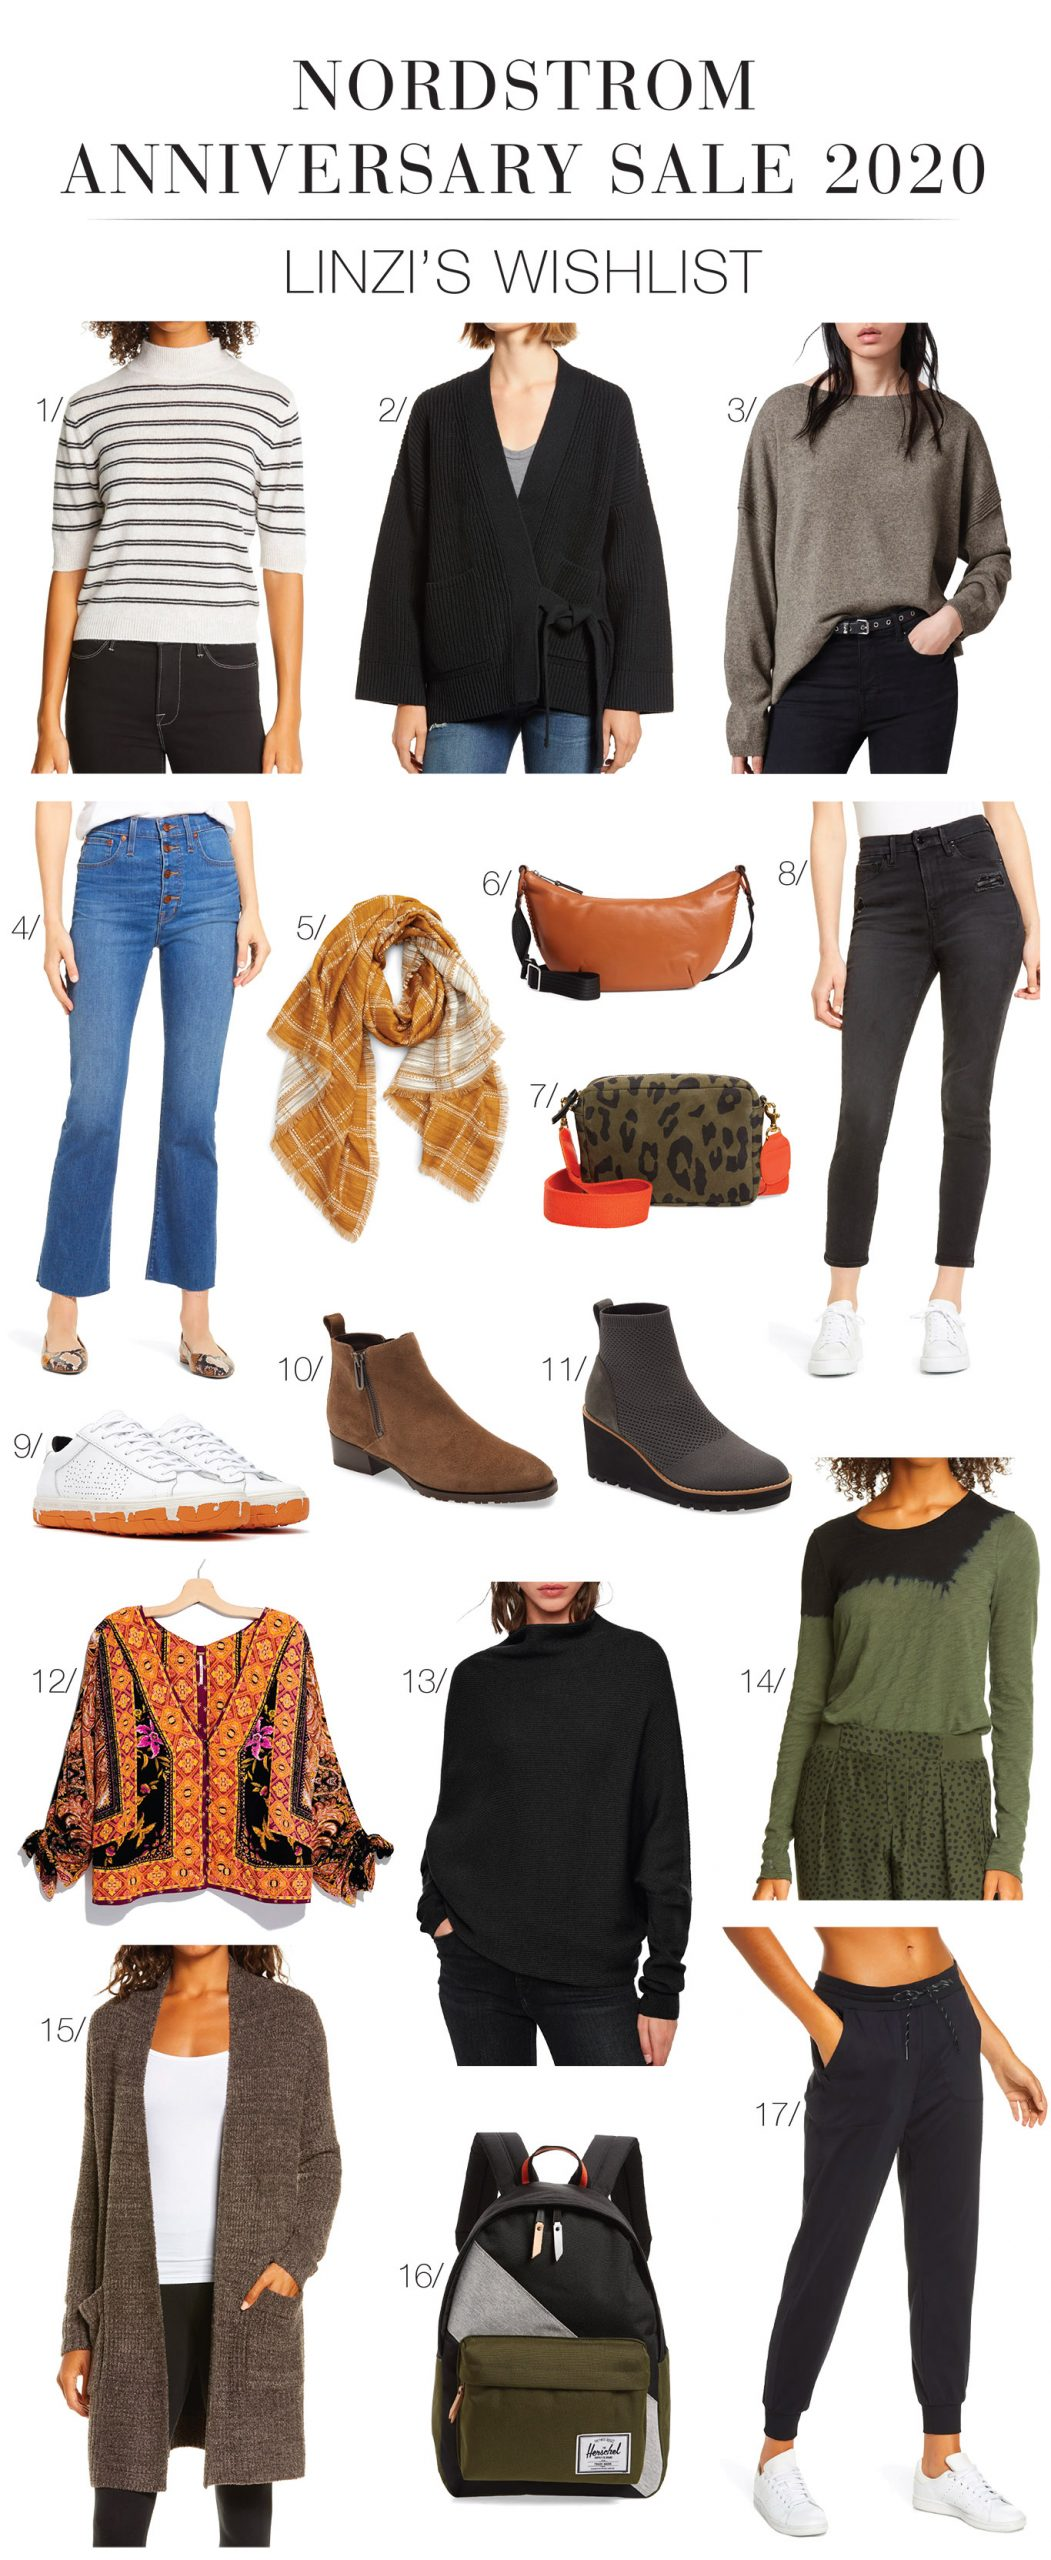 The Nordstrom Anniversary Sale 2020 preview means we can kinda #addtocart now. Linzi's guide to EILEEN FISHER, FRAME & AllSaints faves inside.